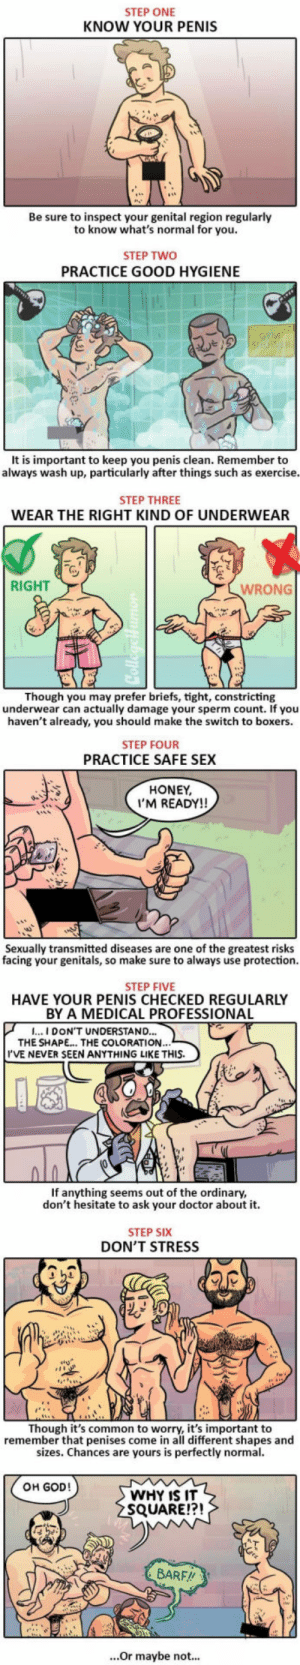 6 Steps to Maintaining a Healthy Penis: STEP ONE  KNOW YOUR PENIS  Be sure to inspect your genital region regularlyy  to know what's normal for you  STEP TWO  PRACTICE GOOD HYGIENE  It is important to keep you penis clean. Remember to  always wash up, particularly after things such as exercise  STEP THREE  WEAR THE RIGHT KIND OF UNDERWEAR  RIGHT  WRONG  Though you may prefer briefs, tight, constricting  underwear can actually damage your sperm count. If you  haven't already, you should make the switch to boxers.  STEP FOUR  PRACTICE SAFE SEX  HONEY  I'M READY!!  Sexually transmitted diseases are one of the greatest risks  facing your genitals, so make sure to always use protection.  genitals, S0  STEP FIVE  HAVE YOUR PENIS CHECKED REGULARLY  BY A MEDICAL PROFESSIONAL  CAL PROFED  I...I DON'T UNDERSTAND..  THE SHAPE.. THE COLORATION  I'VE NEVER SEEN ANYTHING LIKE THIS.  If anything seems out of the ordinary  don't hesitate to ask your doctor about it.  STEP SIX  DON'T STRESS  23  Though it's common to worry, it's important to  remember that penises come in all different shapes and  sizes. Chances are yours is perfectly normal  OH GOD!  WHY IS IT  SQUARE!?!  BARF!!  ...Or maybe not... 6 Steps to Maintaining a Healthy Penis